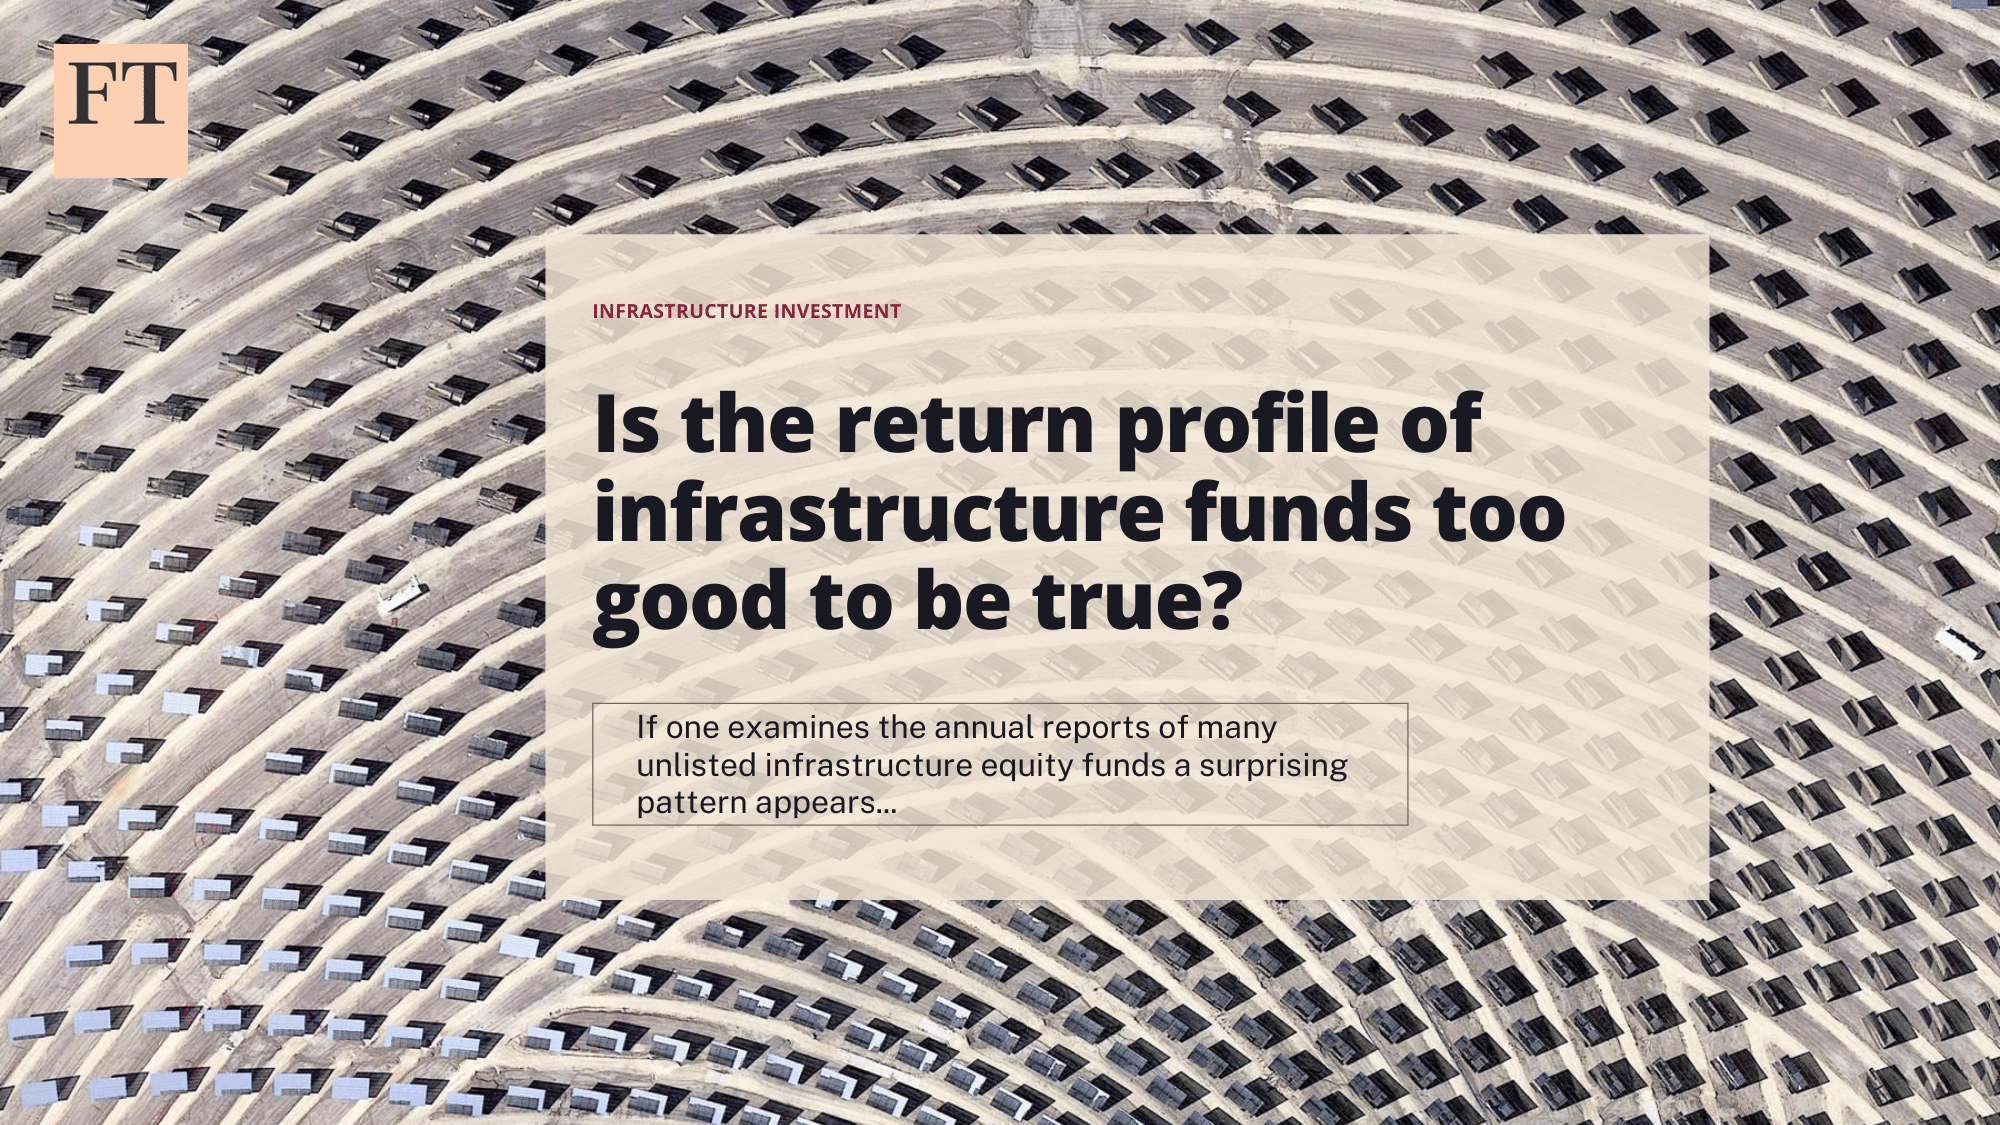 FT: Is the return profile of infra funds too good to be true?